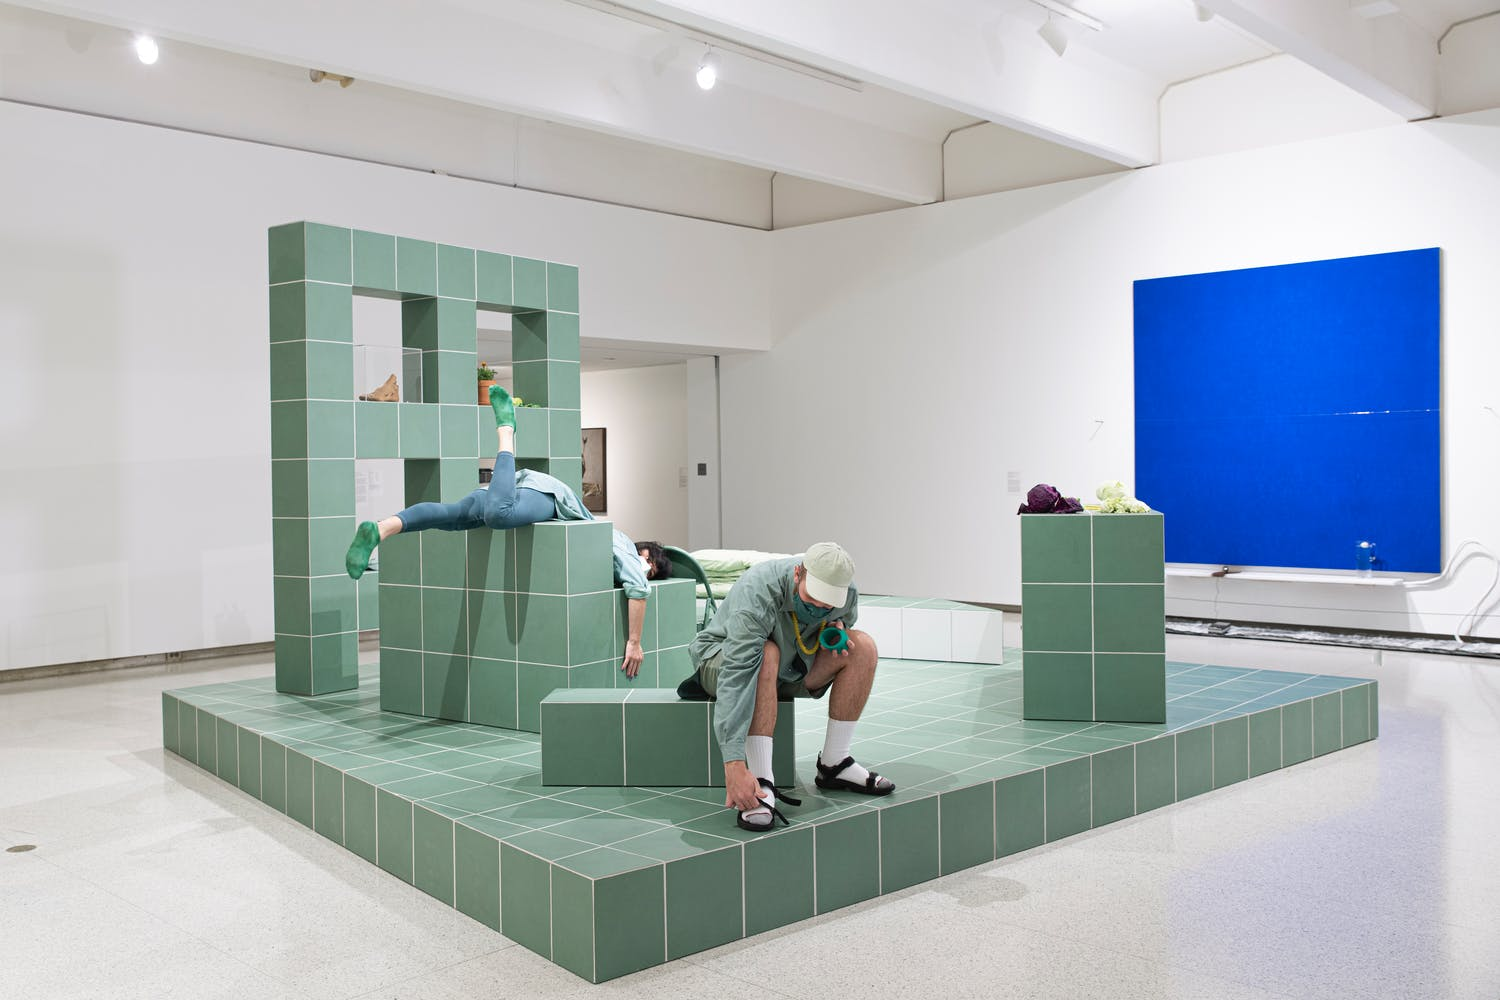 Gallery view with green block like structure and two men performing on it